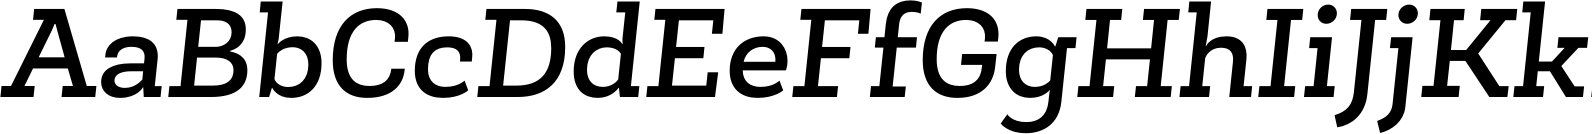 Newslab Medium Italic Font